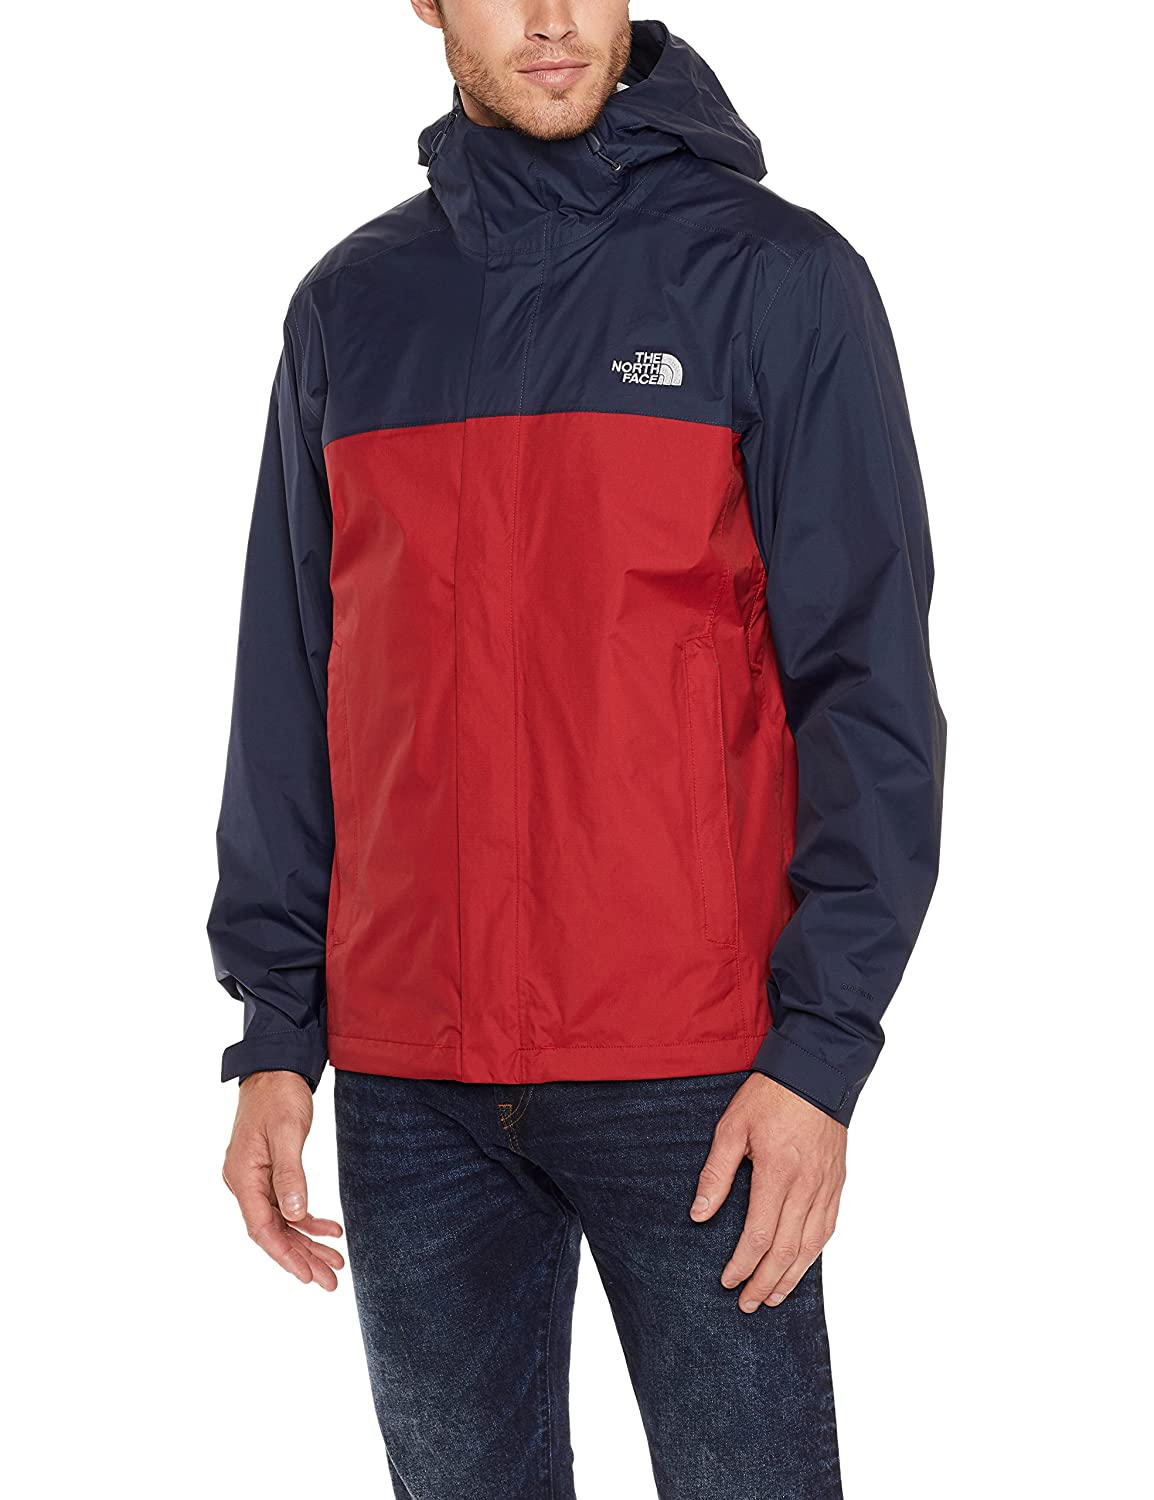 The North Face OUTERWEAR メンズ B01HQSBWGY X-Large|Cardinal Red/Urban Navy Cardinal Red/Urban Navy X-Large